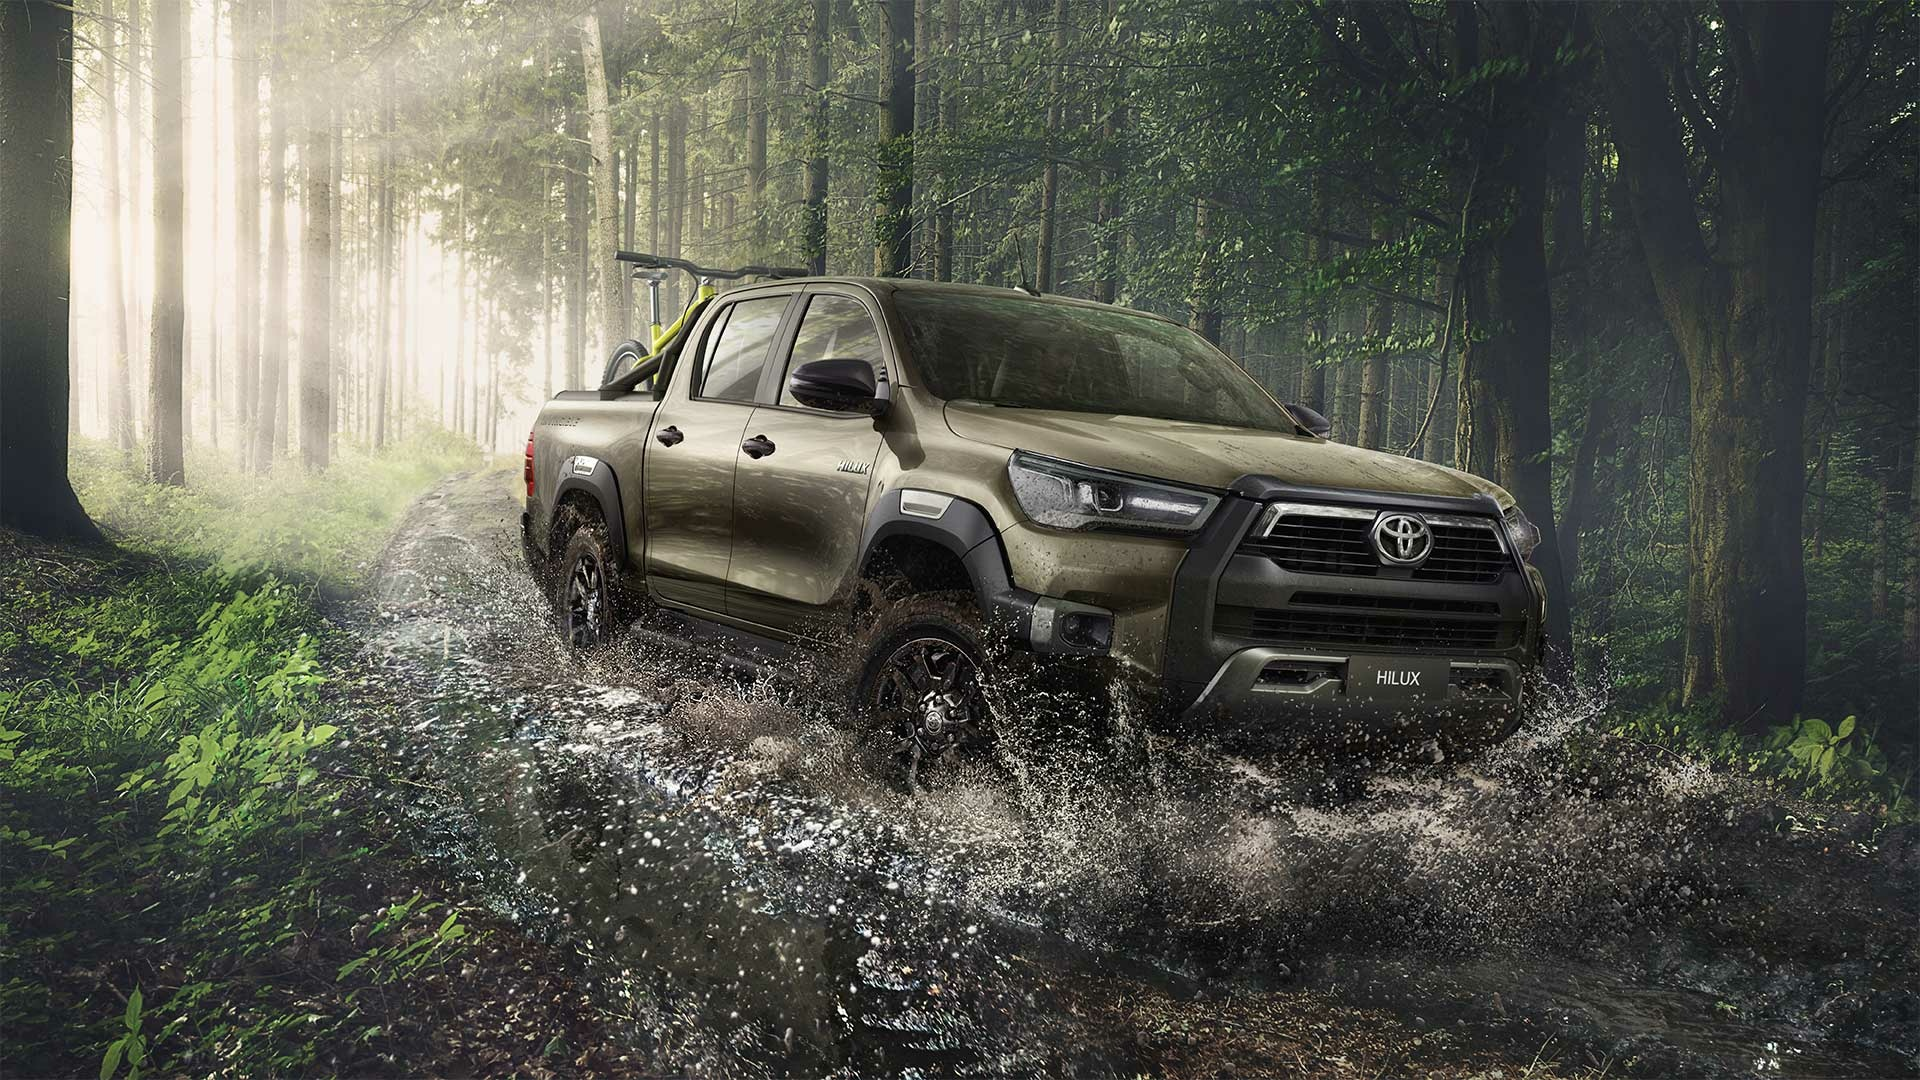 toyota_hilux_2020_gallery_04_full_tcm_3046_2017449_01